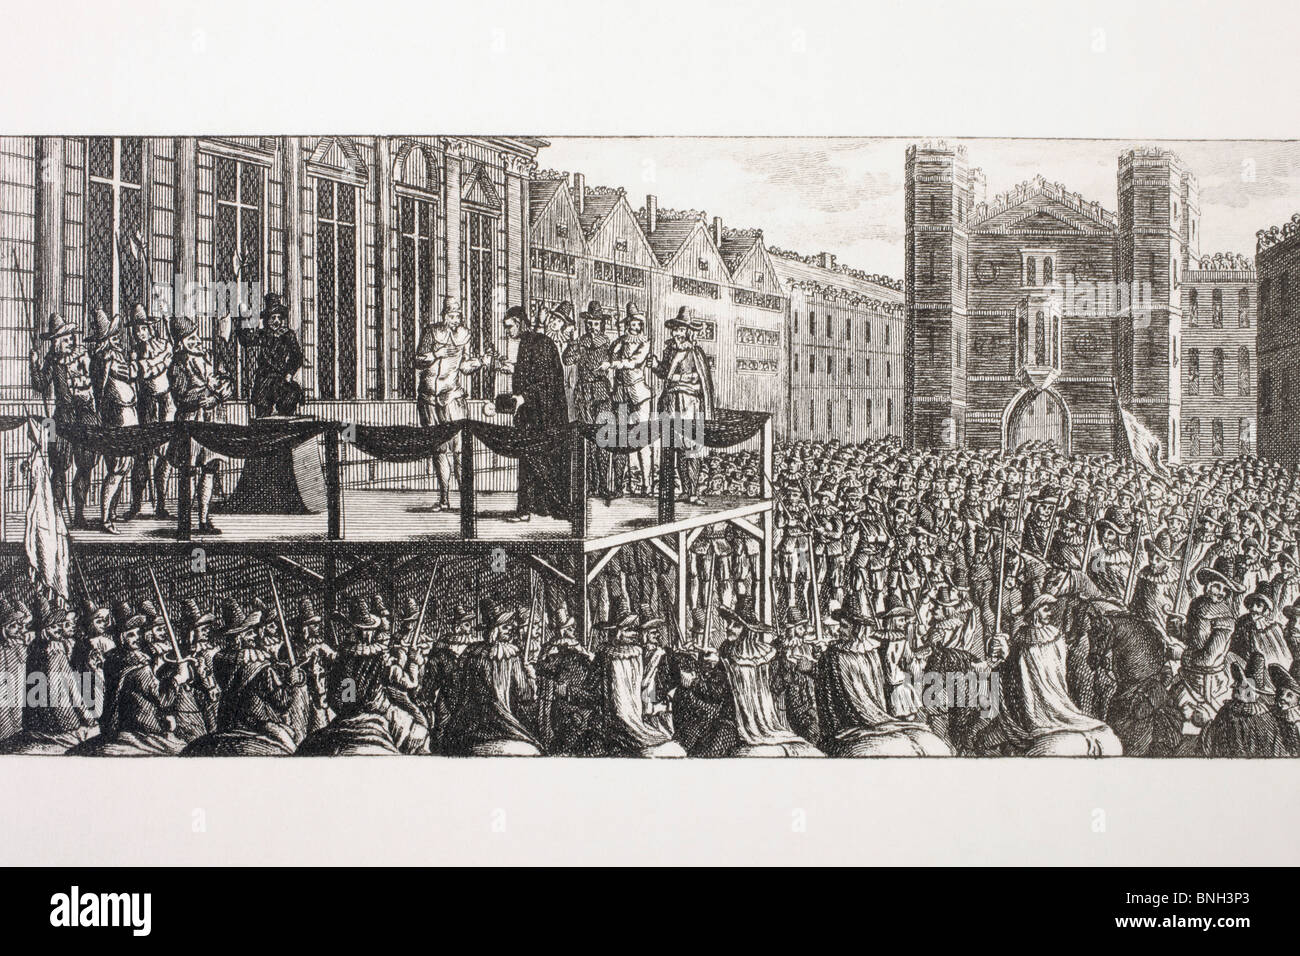 The execution of King Charles I of England. - Stock Image